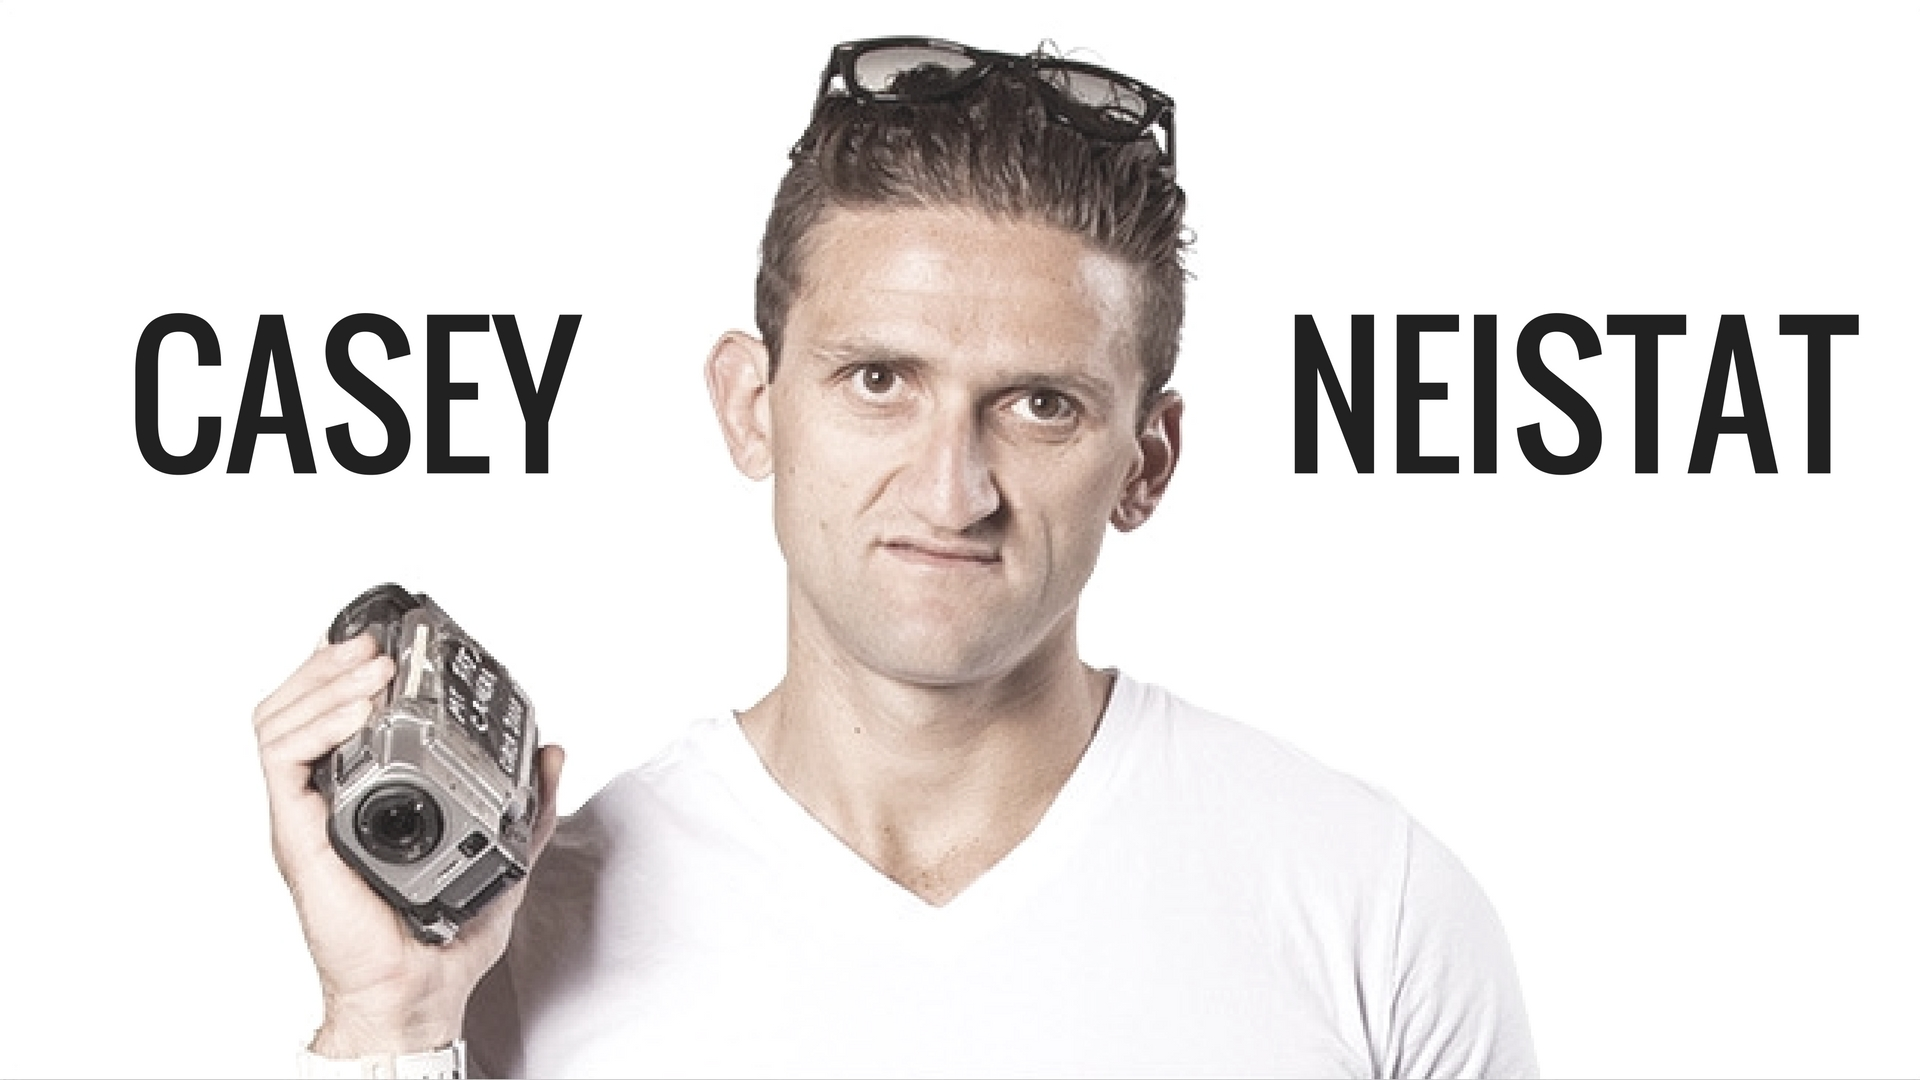 What Does Casey Neistat Do For a Living? » Fynestuff